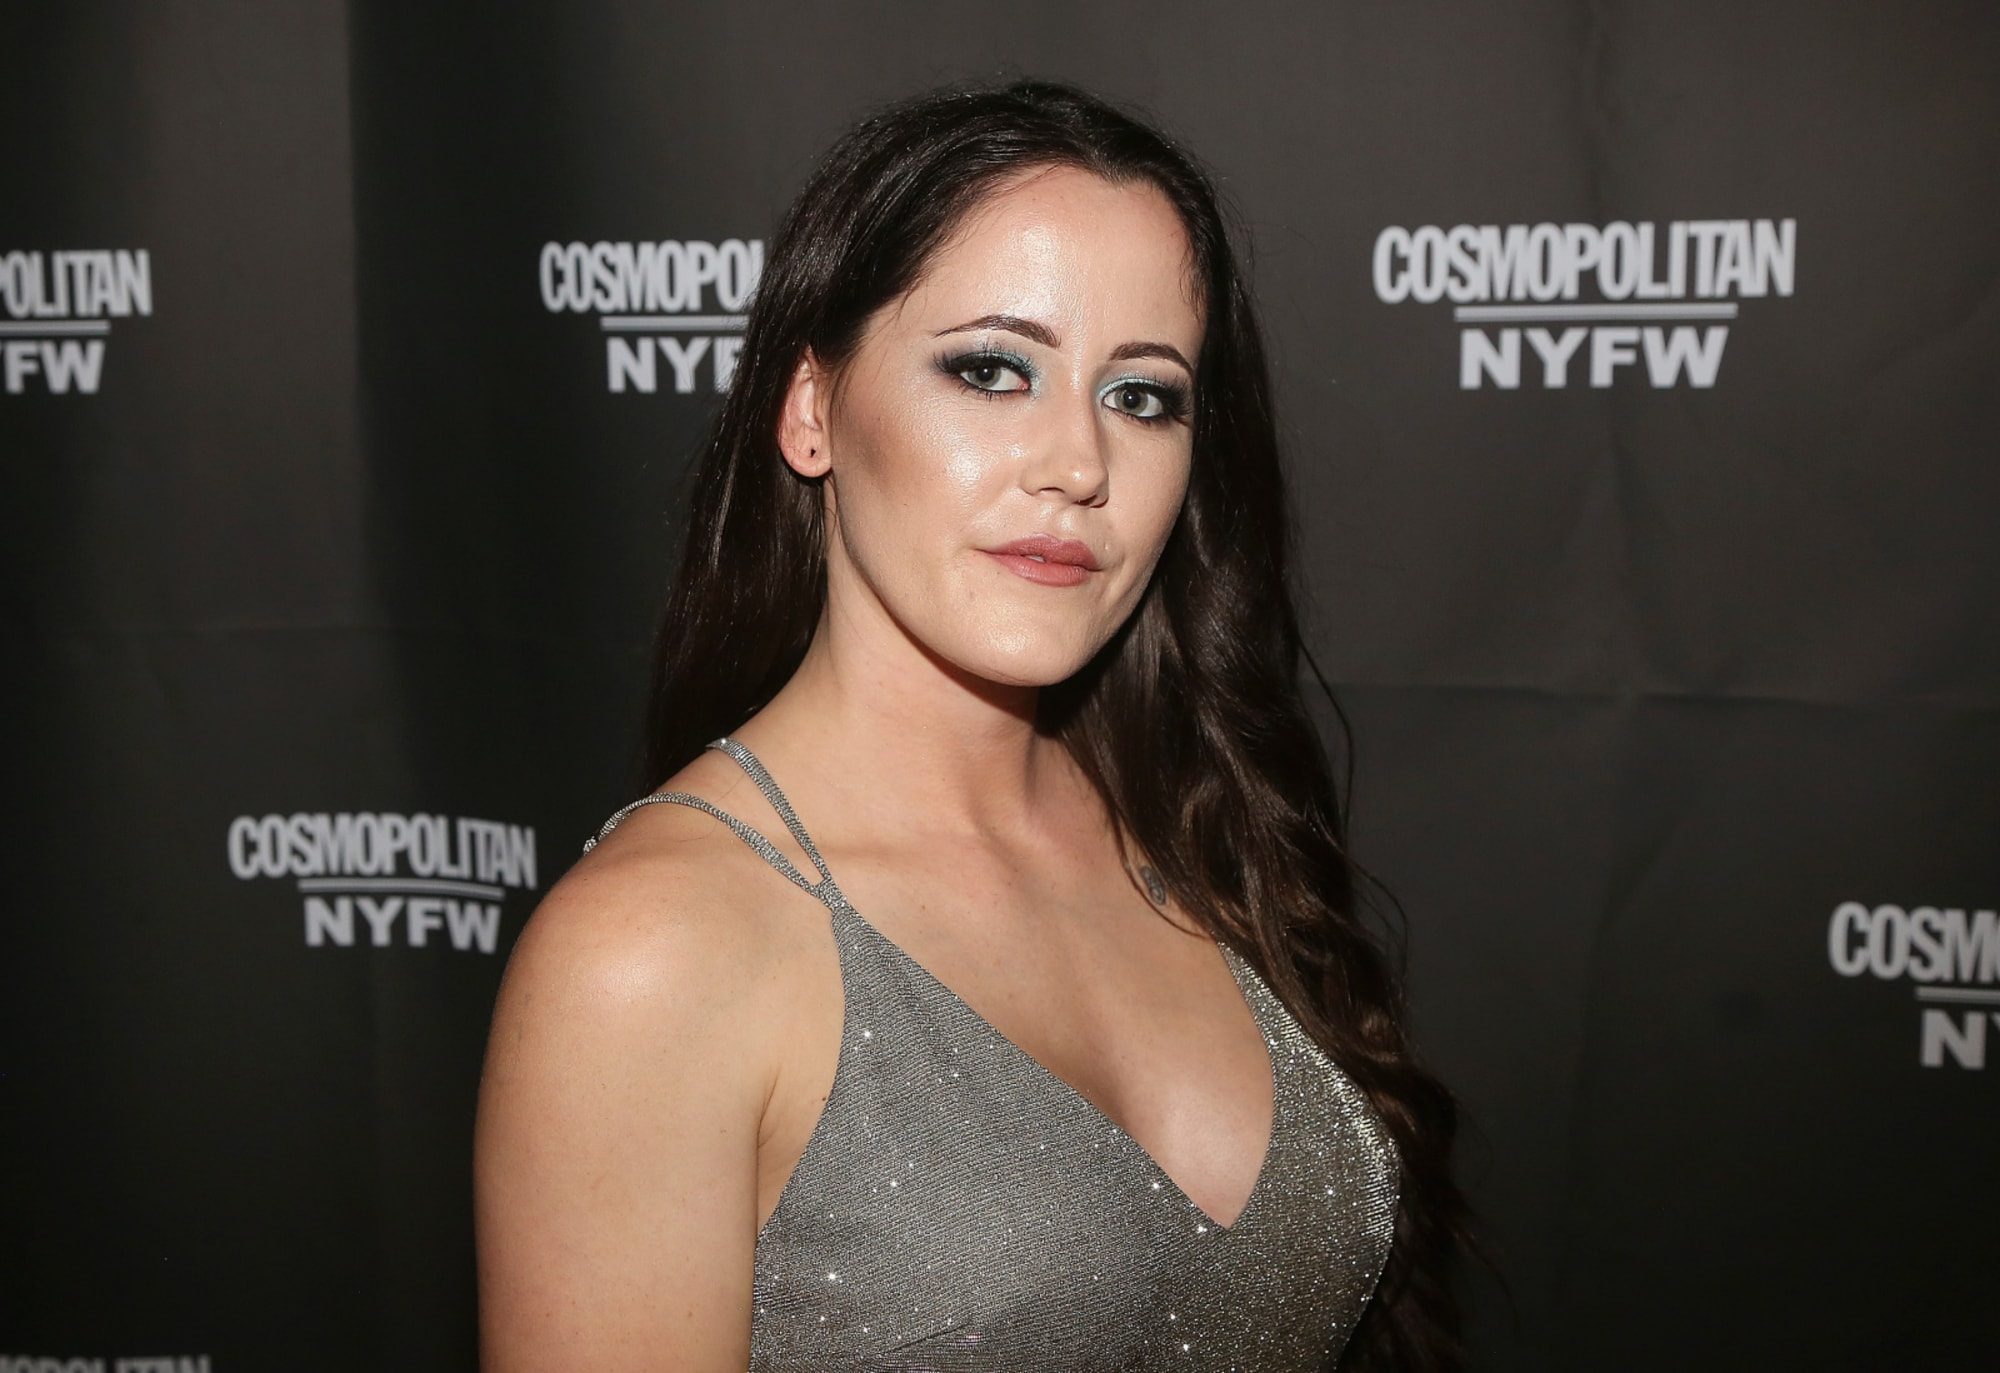 Jenelle Evans apologizes after using R-word in offensive TikTok